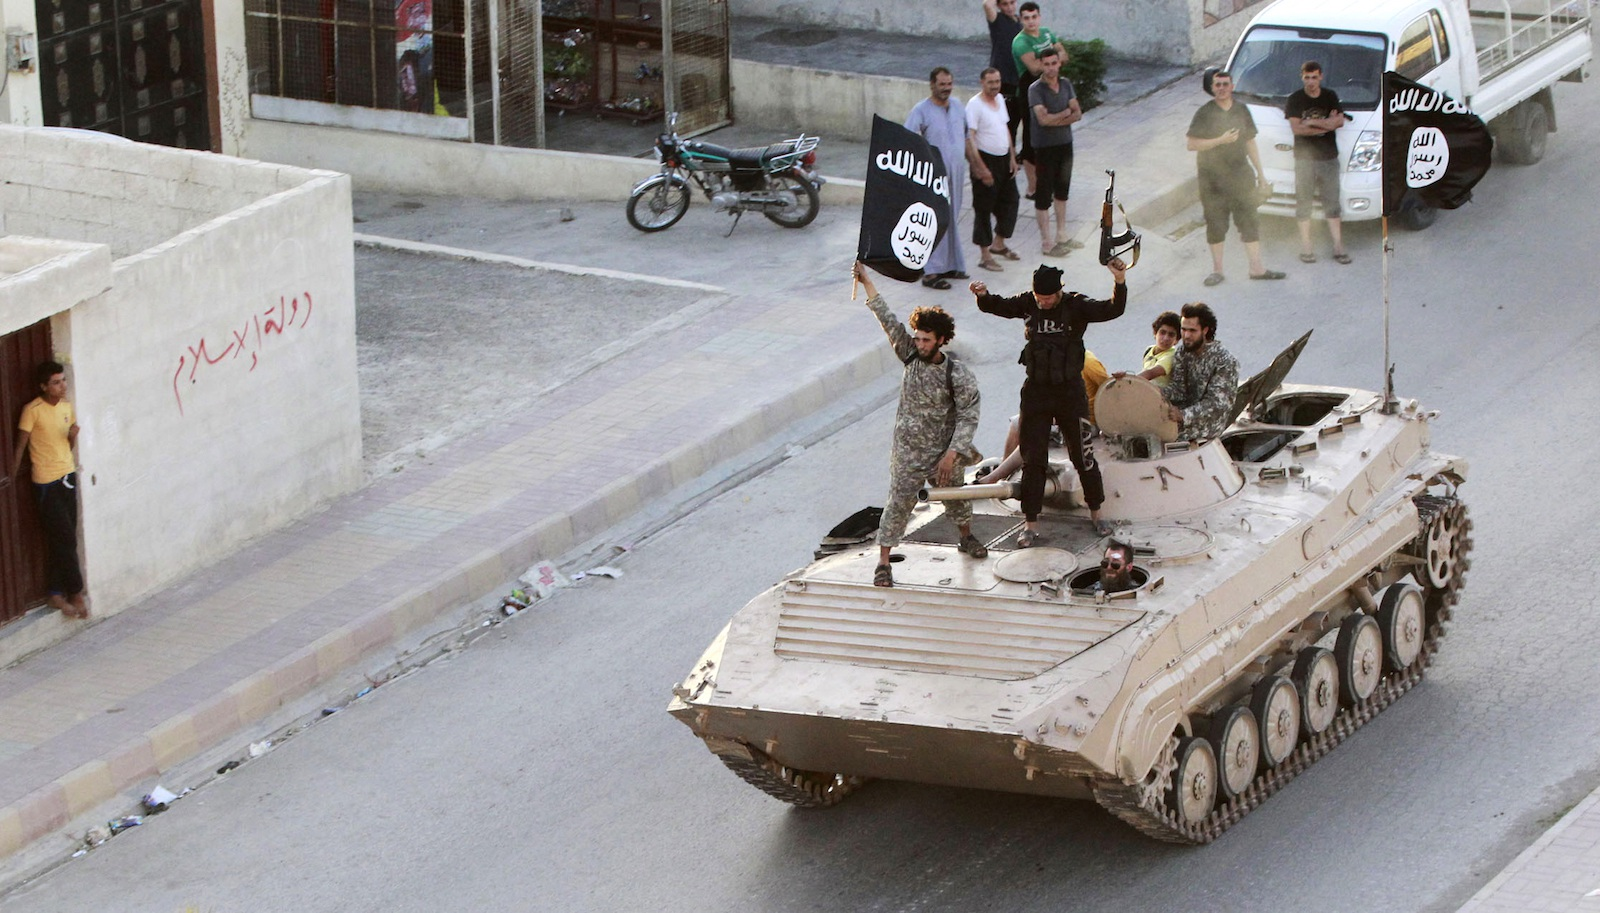 "Militant Islamist fighters take part in a military parade along the streets of northern Raqqa province June 30, 2014. Militant Islamist fighters held a parade in Syria's northern Raqqa province to celebrate their declaration of an Islamic ""caliphate"" after the group captured territory in neighbouring Iraq, a monitoring service said. The Islamic State, an al Qaeda offshoot previously known as Islamic State in Iraq and the Levant (ISIL), posted pictures online on Sunday of people waving black flags from cars and holding guns in the air, the SITE monitoring service said.  REUTERS/Stringer (SYRIA - Tags: POLITICS CIVIL UNREST CONFLICT) - RTR3WJ9Q"